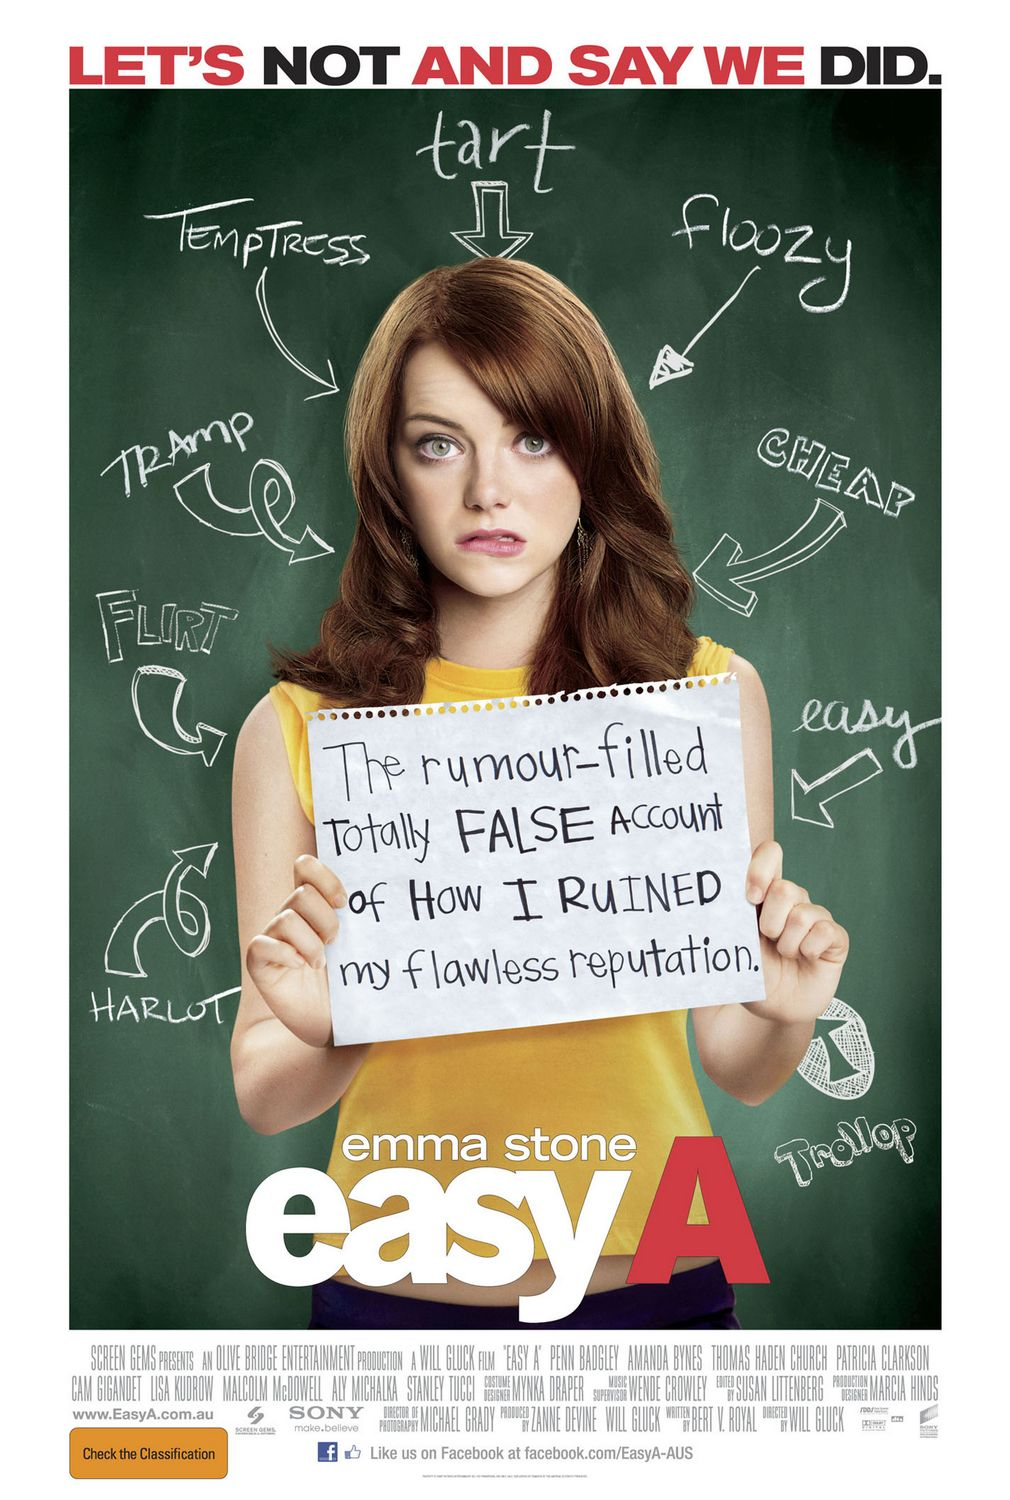 The film poster showing Olive (Emma Stone) in front of a blackboard. There are misogynist curses on the blackboard with arrows pointing at her. She holds a sign that reads: The rumour-filled totally FALSE account of HOW I RUINED my flawless reputation.